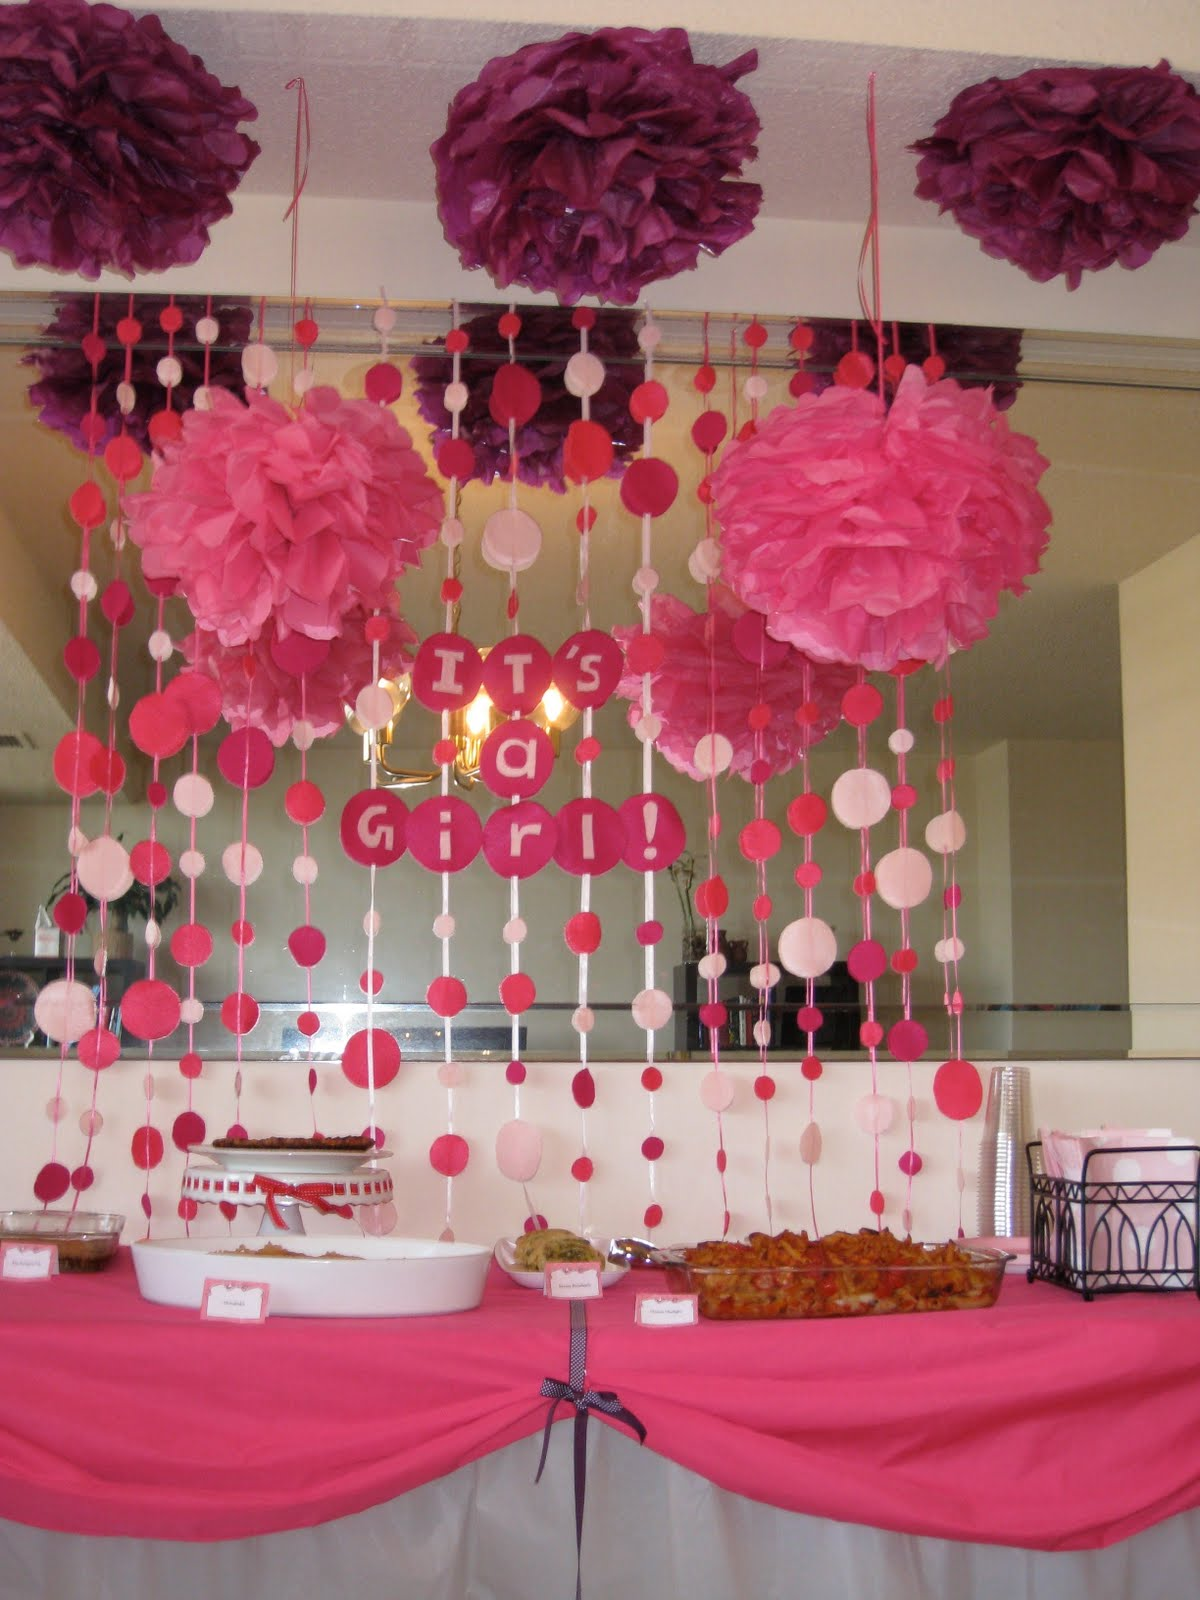 Baby shower food ideas baby shower ideas for a girl for Baby shower decoration centerpieces